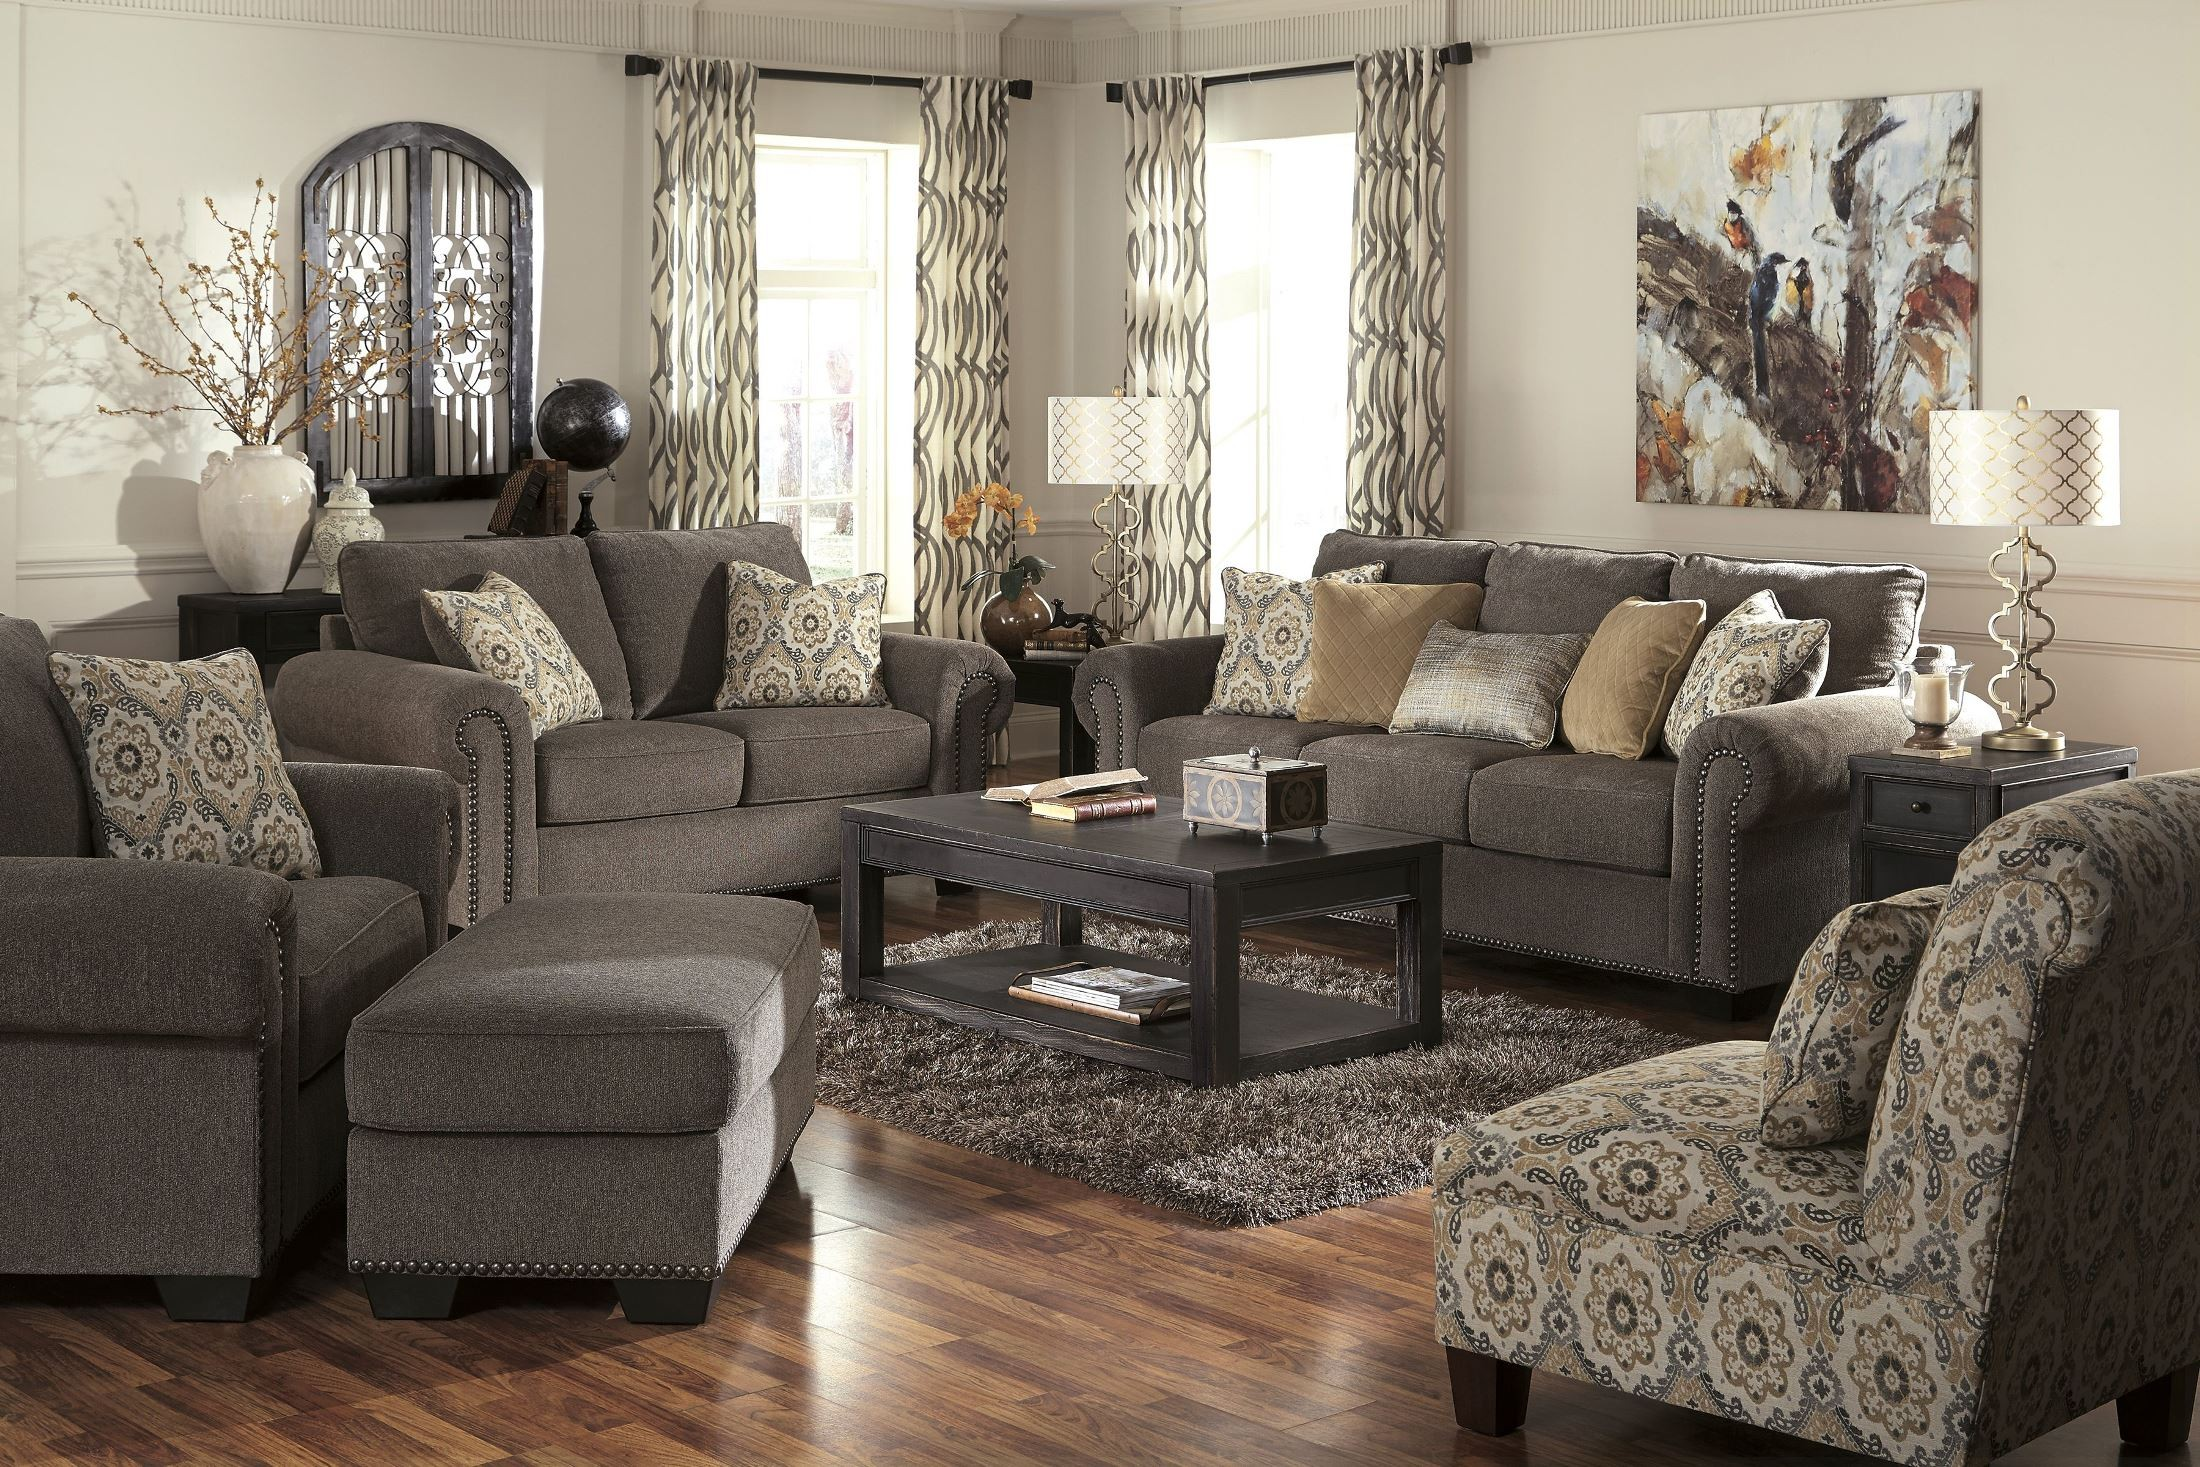 emelen alloy living room set from ashley 45600 35 38 coleman furniture. Black Bedroom Furniture Sets. Home Design Ideas